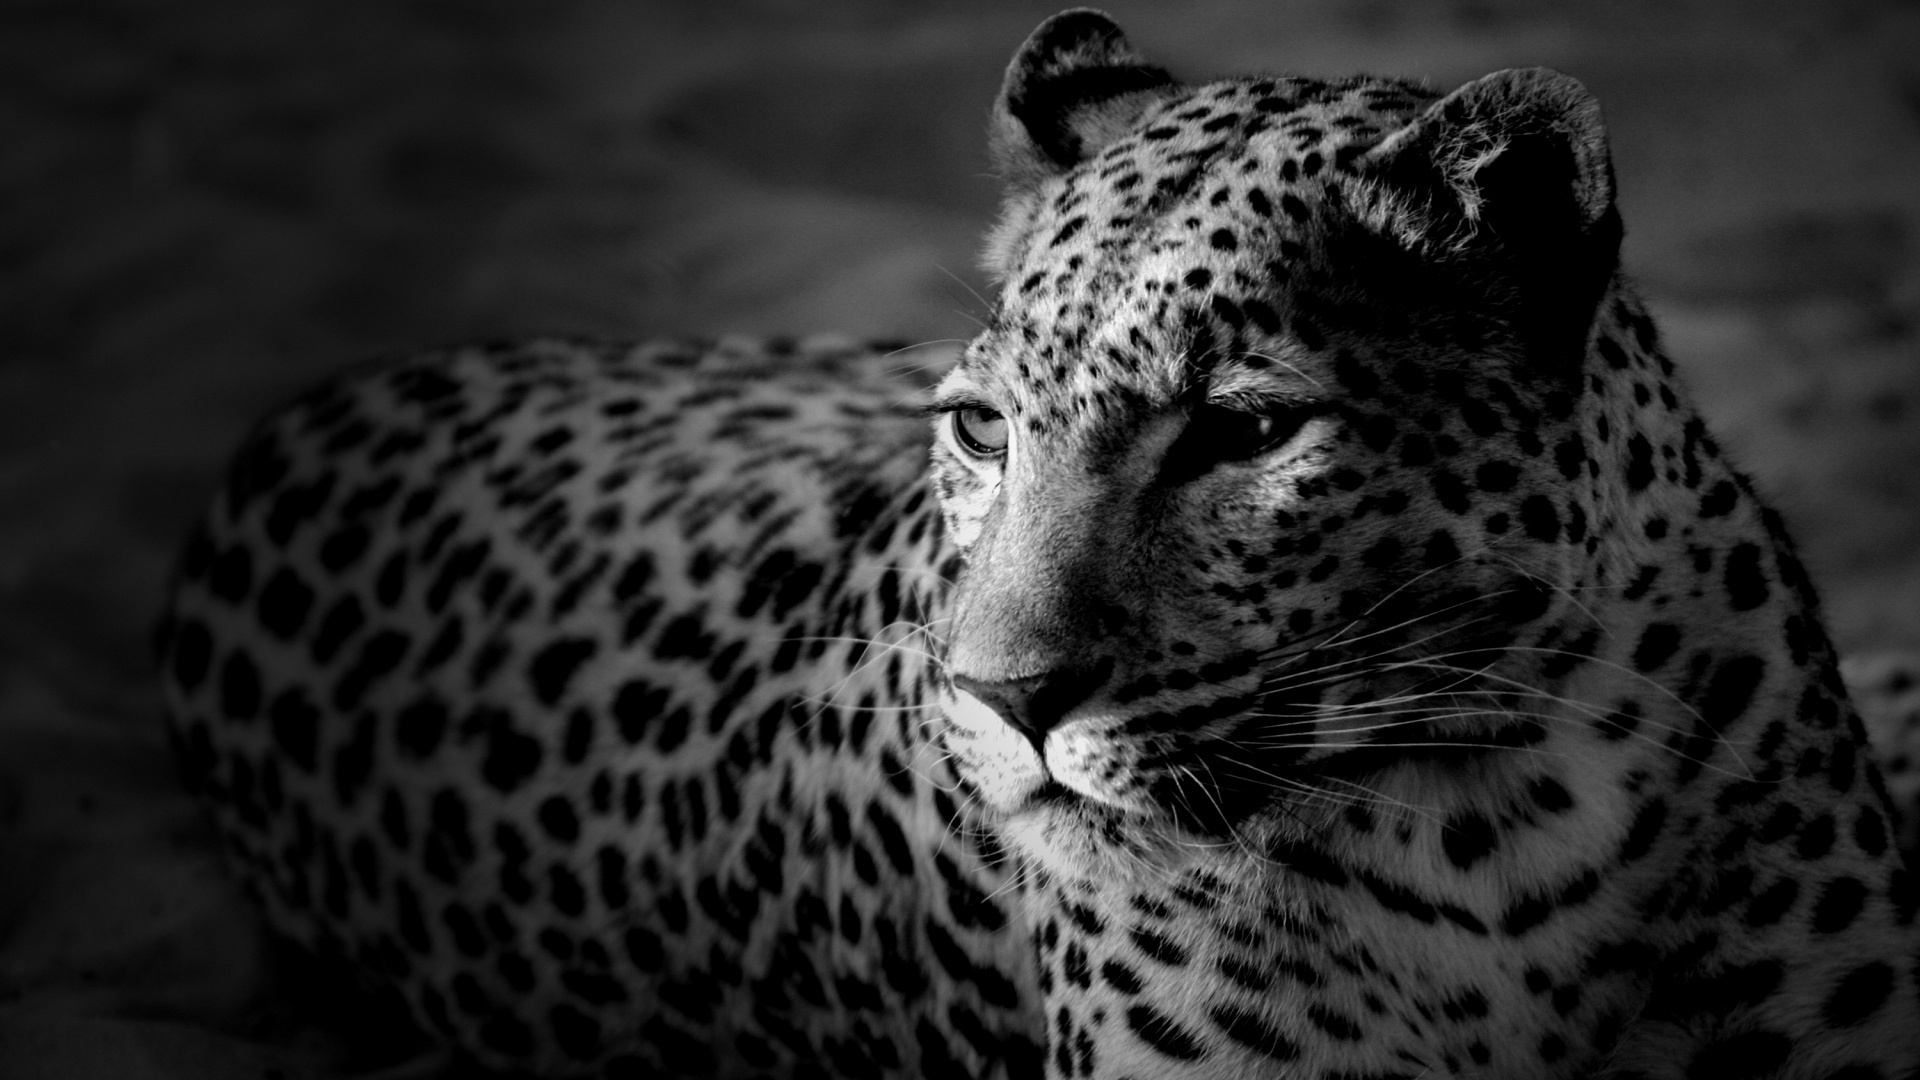 leopard wallpaper download